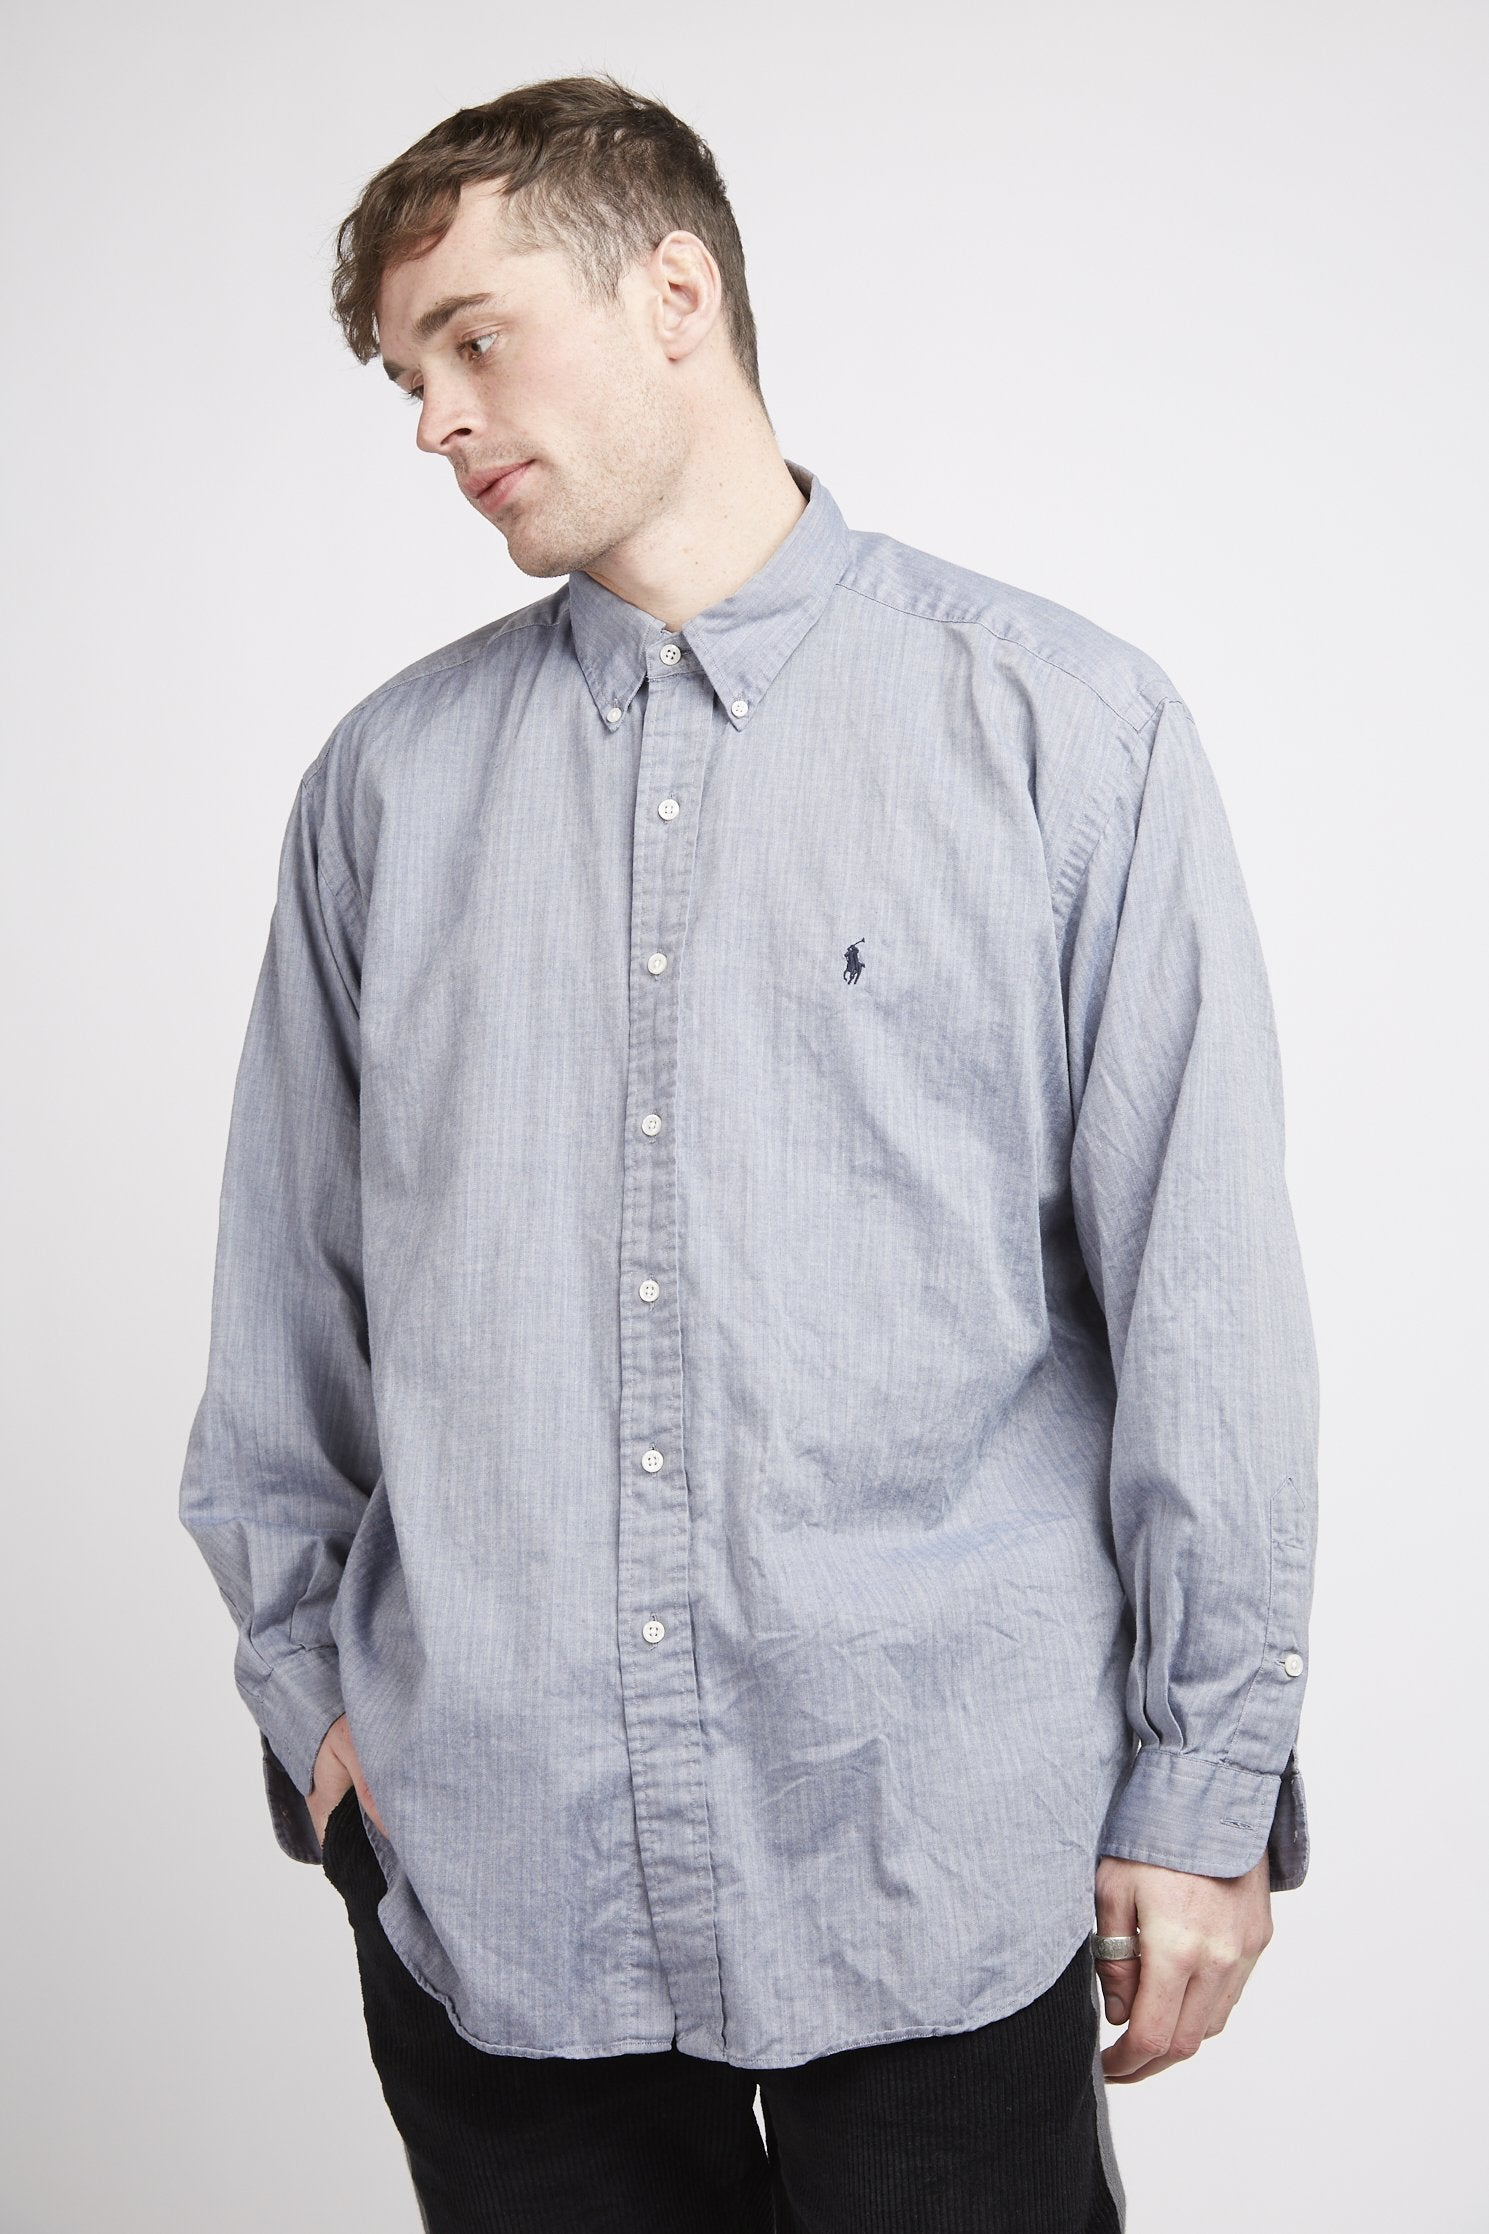 Vintage Essential of the Month: Ralph Lauren Shirts